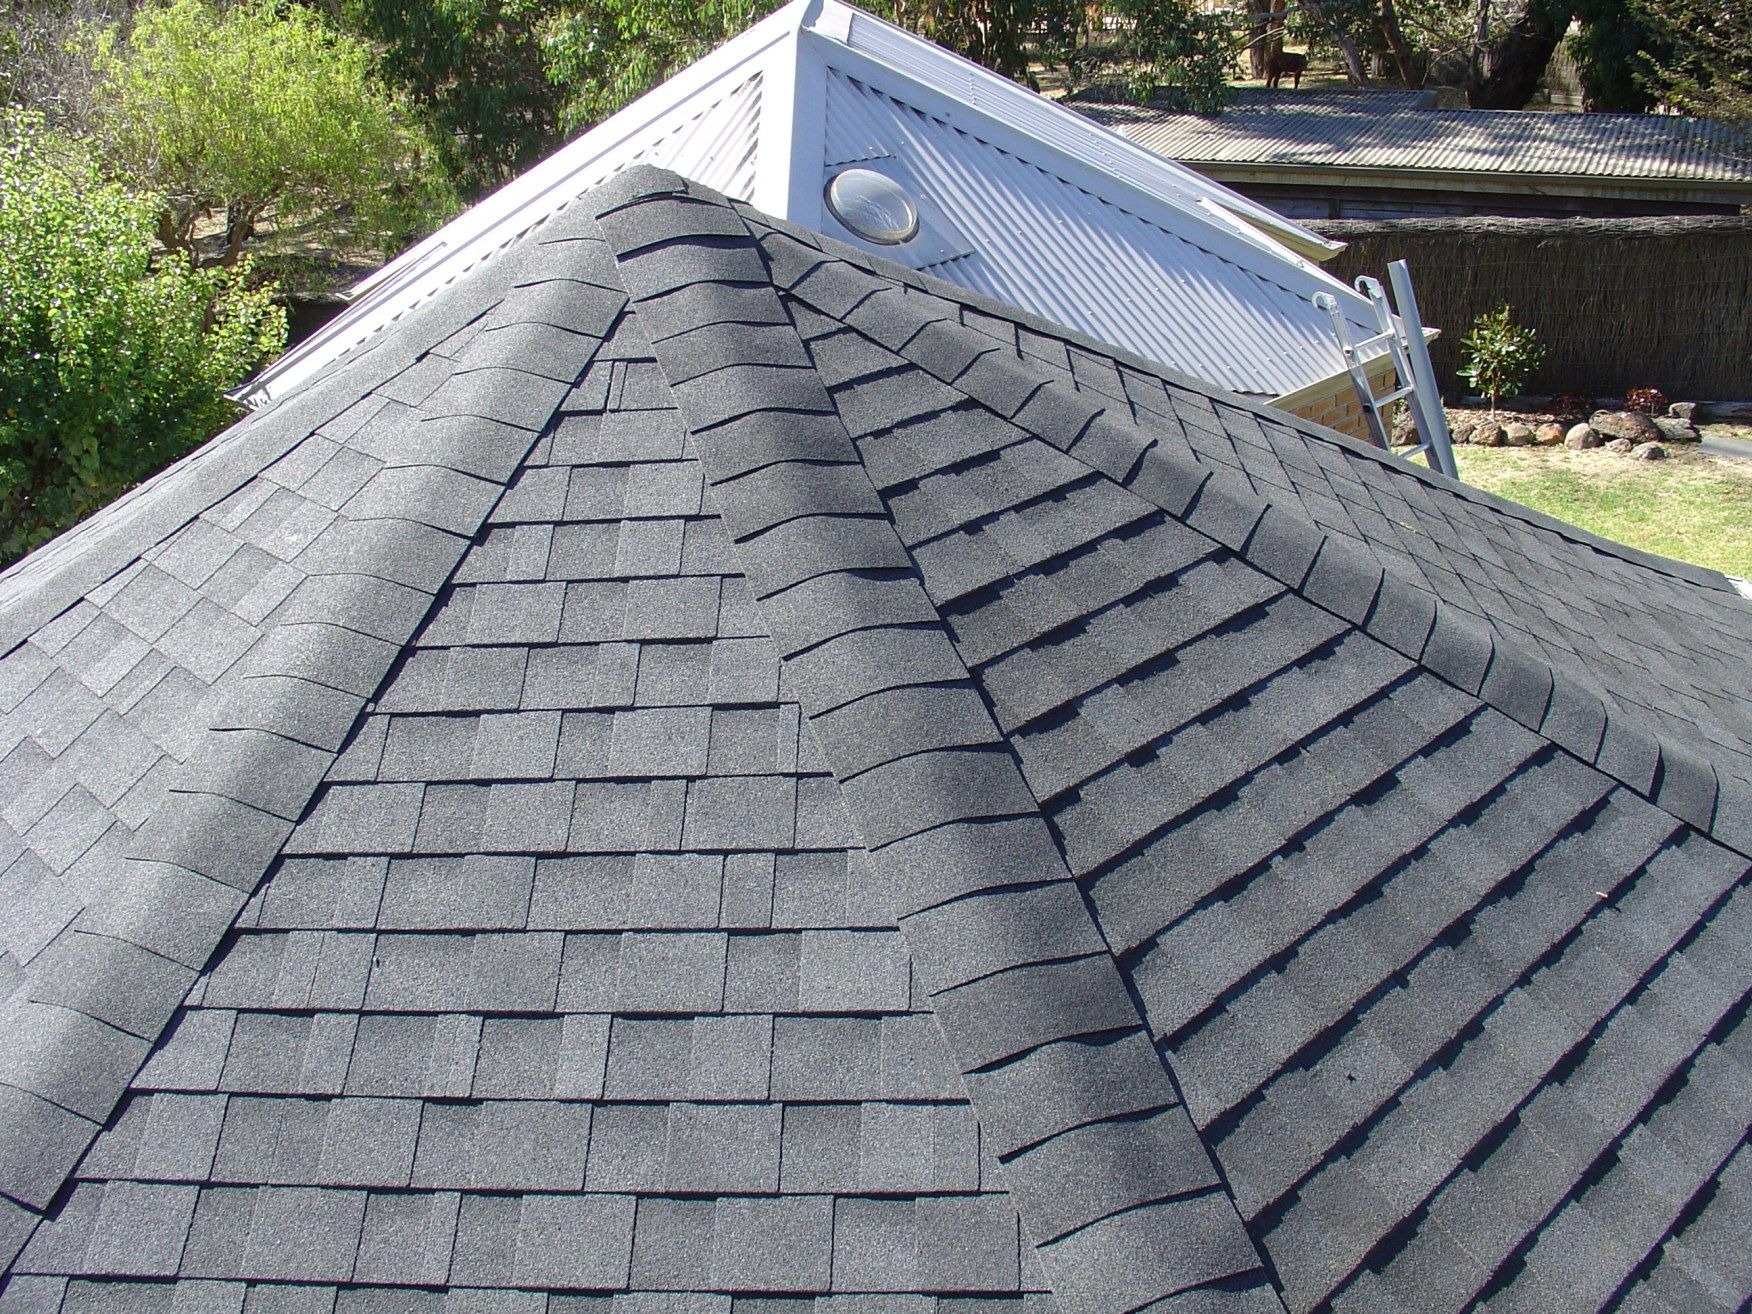 Best Roofing Materials For Homes 2018 Roofing Material Costs Pros Cons Cool Roof Gazebo Roof Composite Roof Shingles